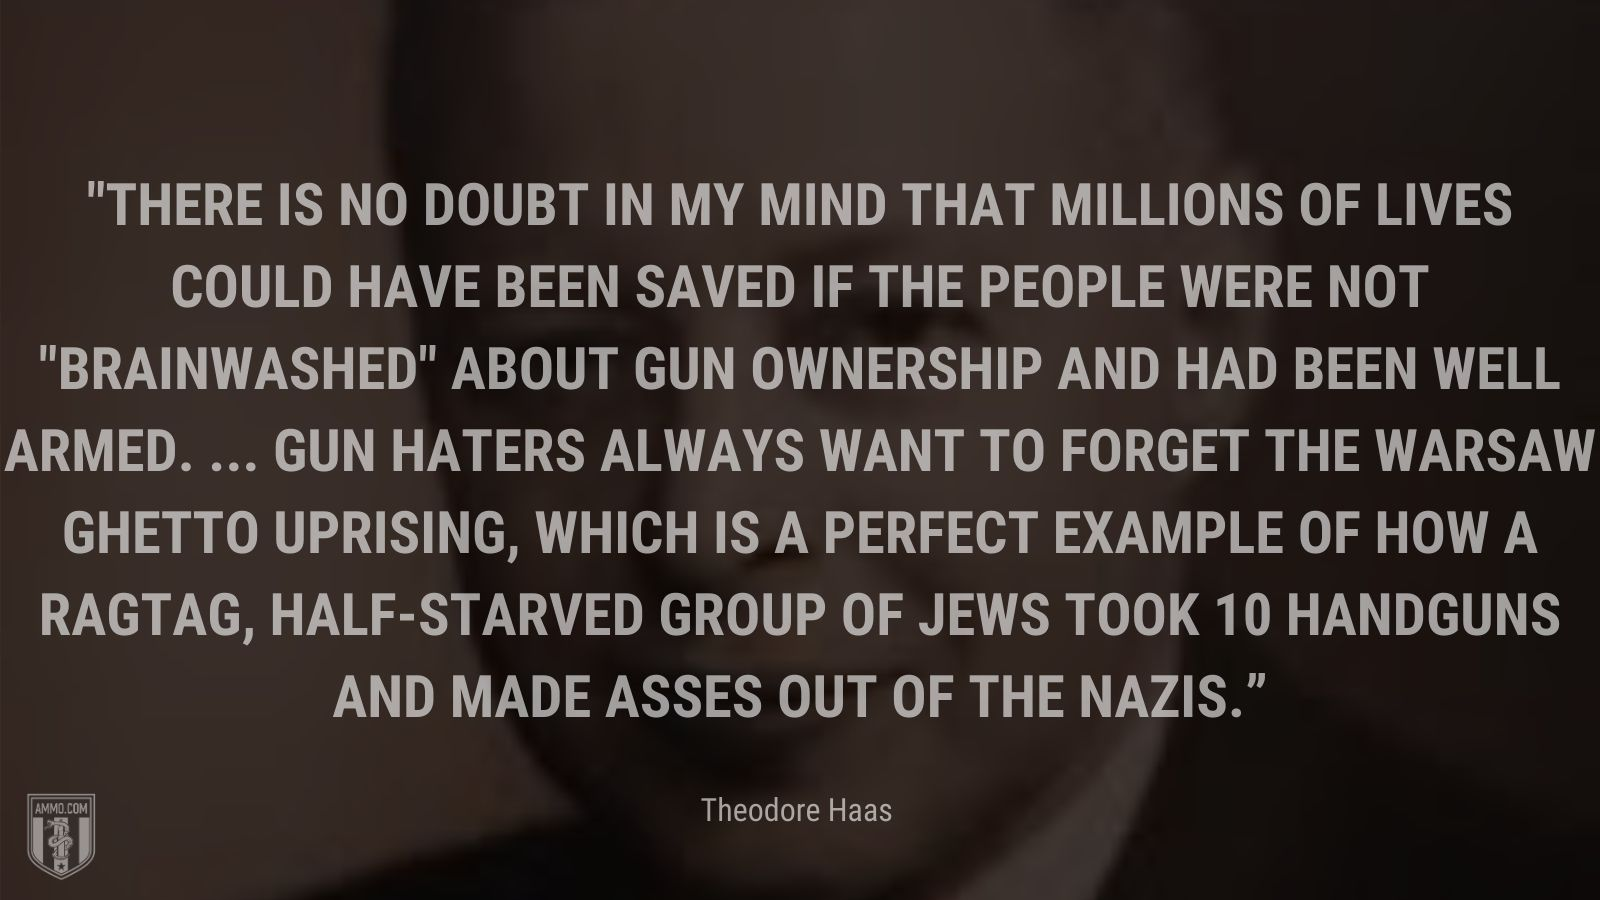 """""""There is no doubt in my mind that millions of lives could have been saved if the people were not brainwashed about gun ownership and had been well armed. ... Gun haters always want to forget the Warsaw Ghetto uprising, which is a perfect example of how a ragtag, half-starved group of Jews took 10 handguns and made asses out of the Nazis."""" - Theodore Haas"""